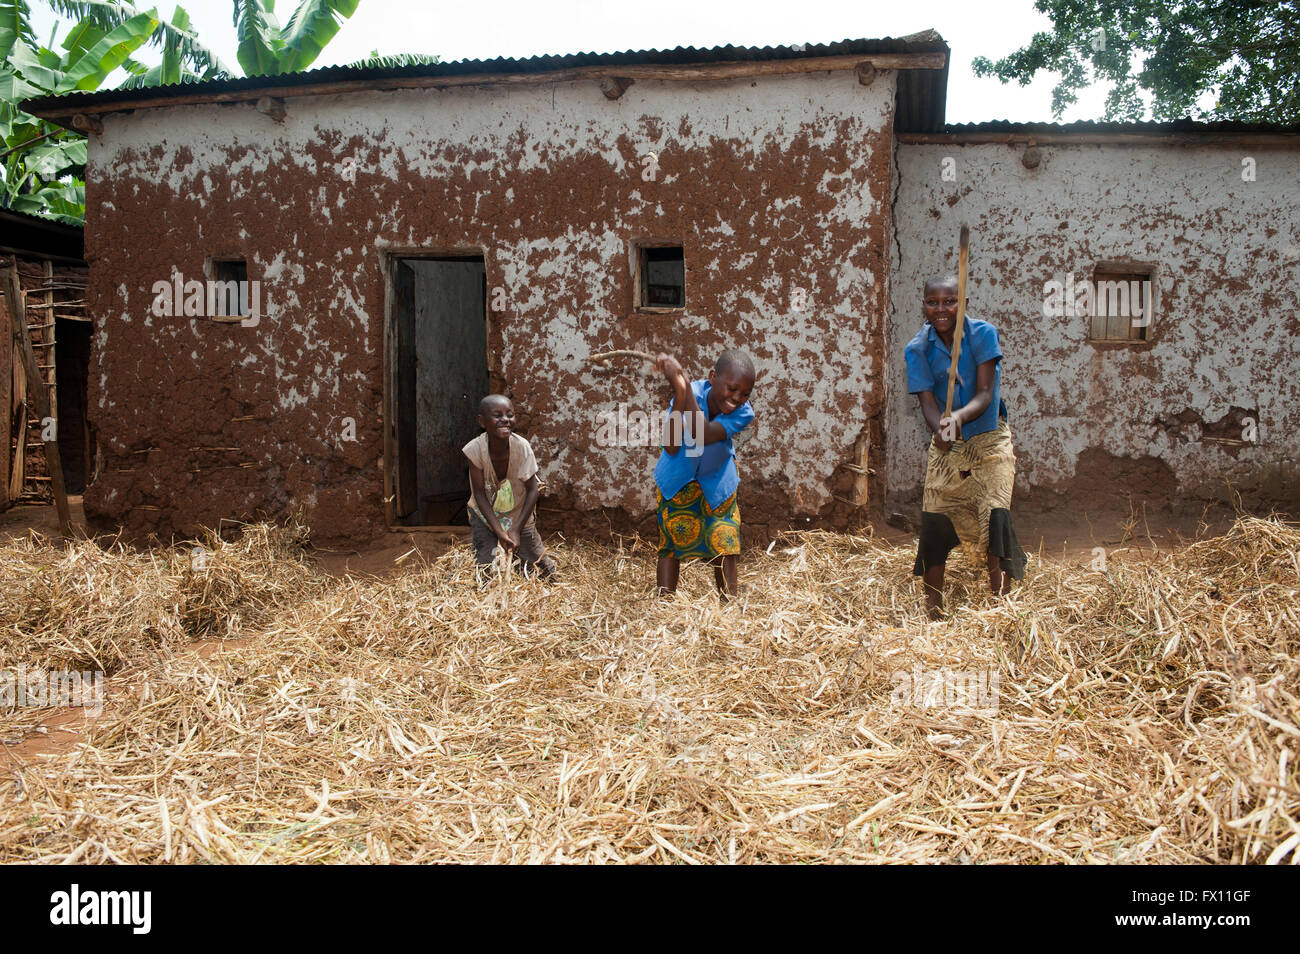 Children threshing crop of beans with sticks, in front yard of their home. Rwanda. - Stock Image